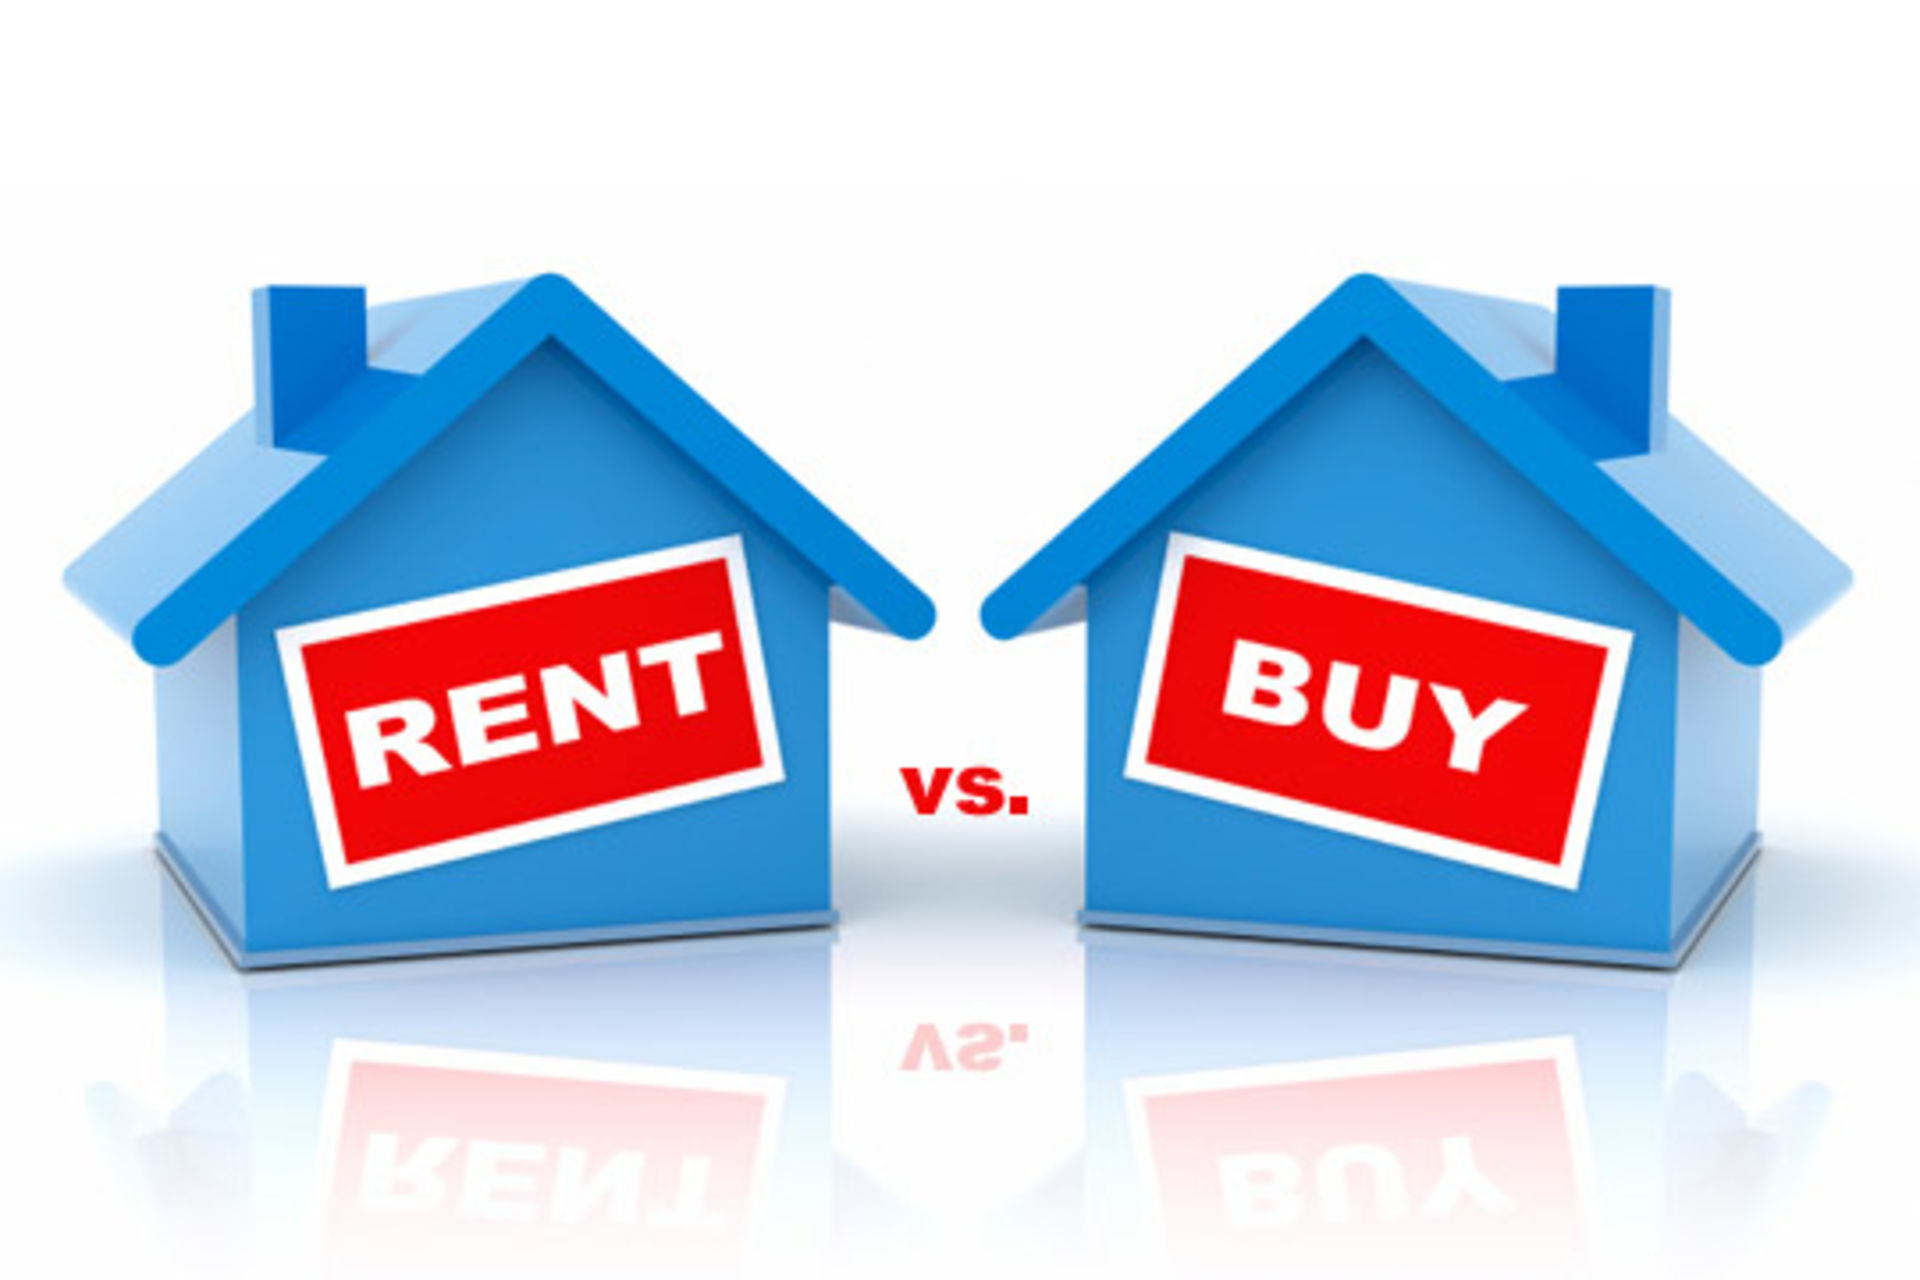 Rent vs. Buy…What does the data shows?